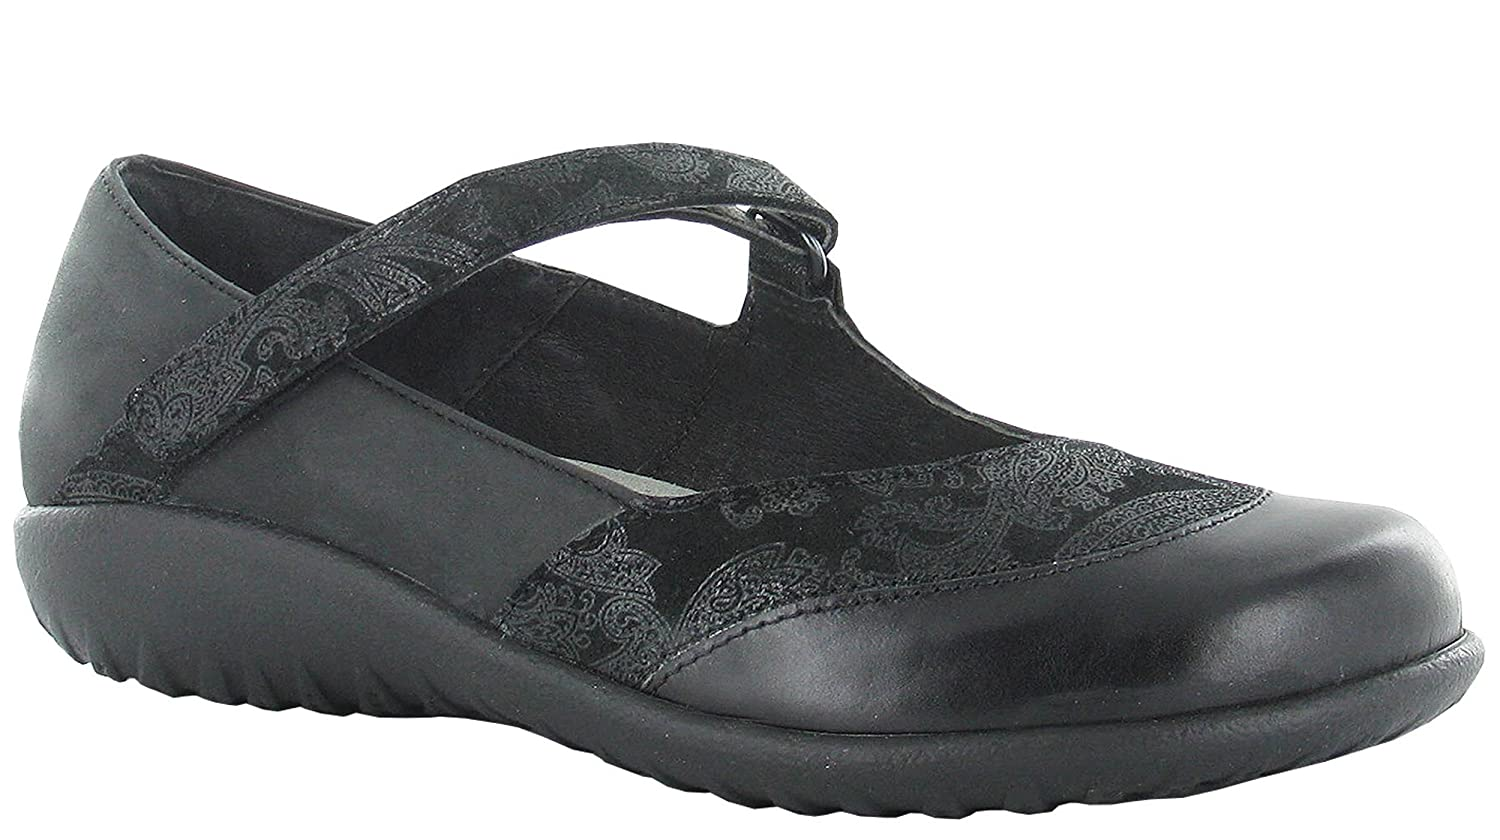 NAOT Women's LUGA Flats Shoes B019SPFM8M 11 B(M) US|Black Lace Nubuck/Oily Coal Nubuck/Black Madras Leather